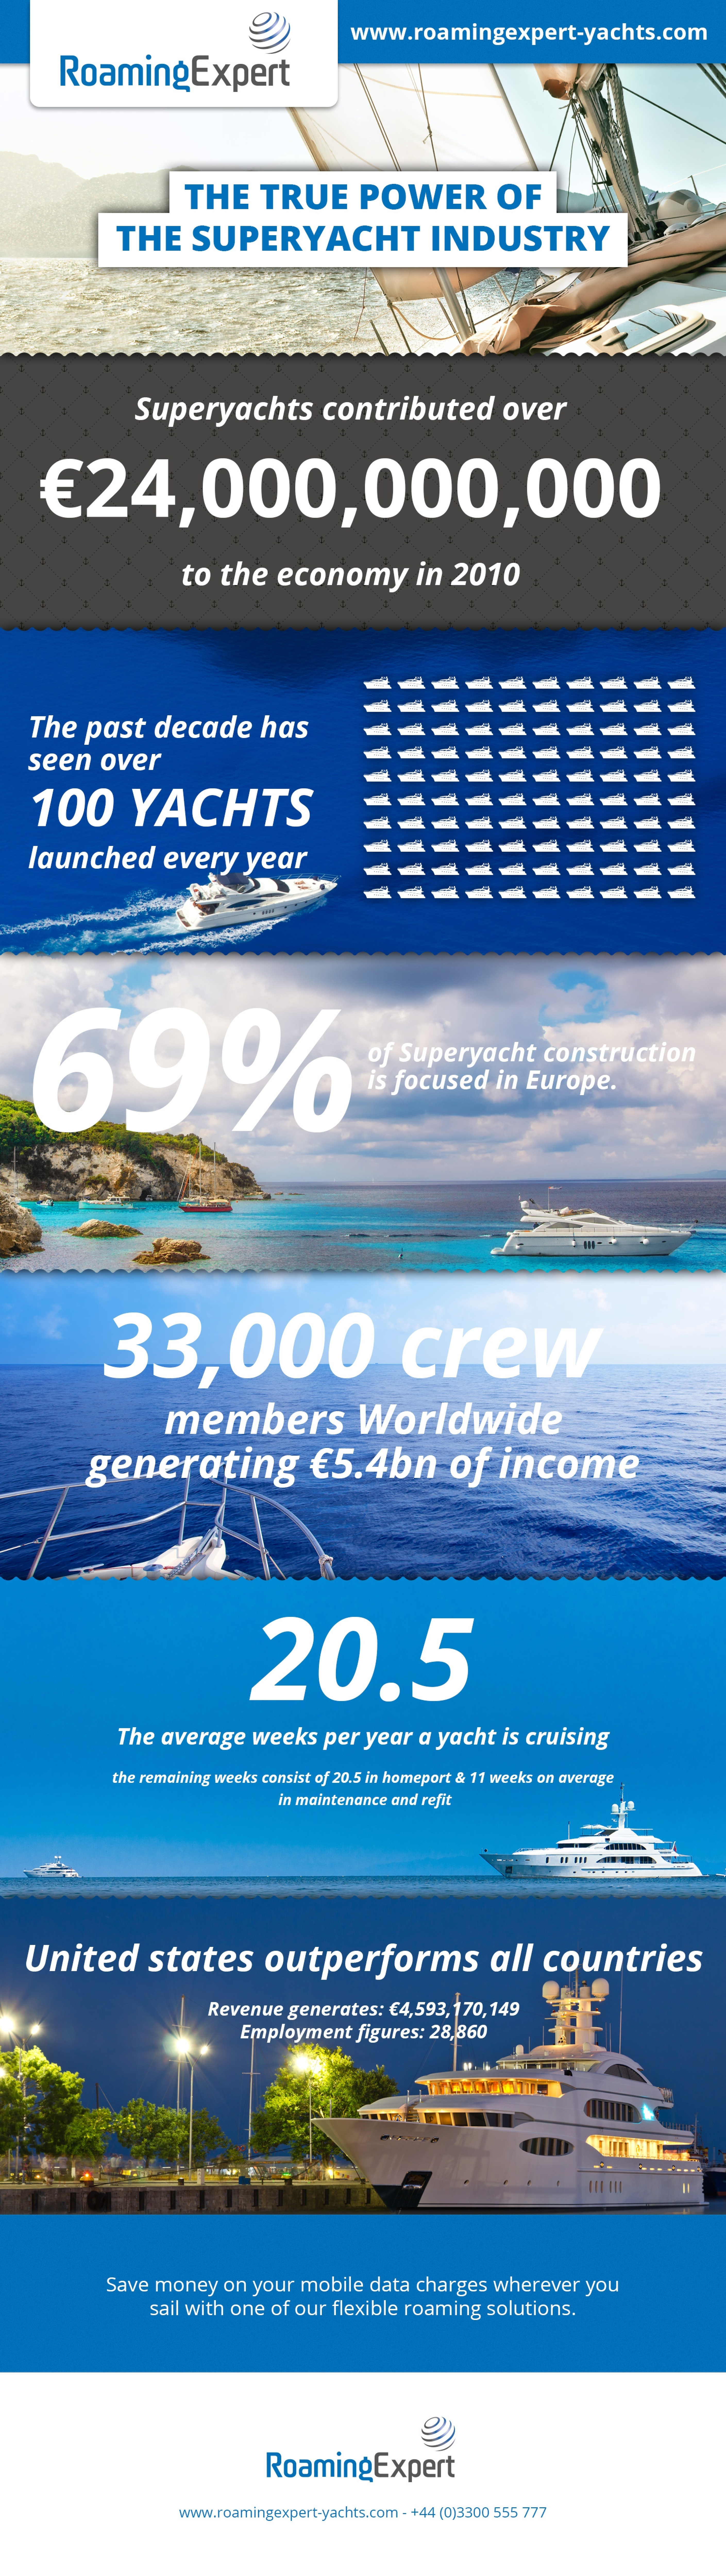 RoamingExpert Infographic: True Power of the Superyacht Industry